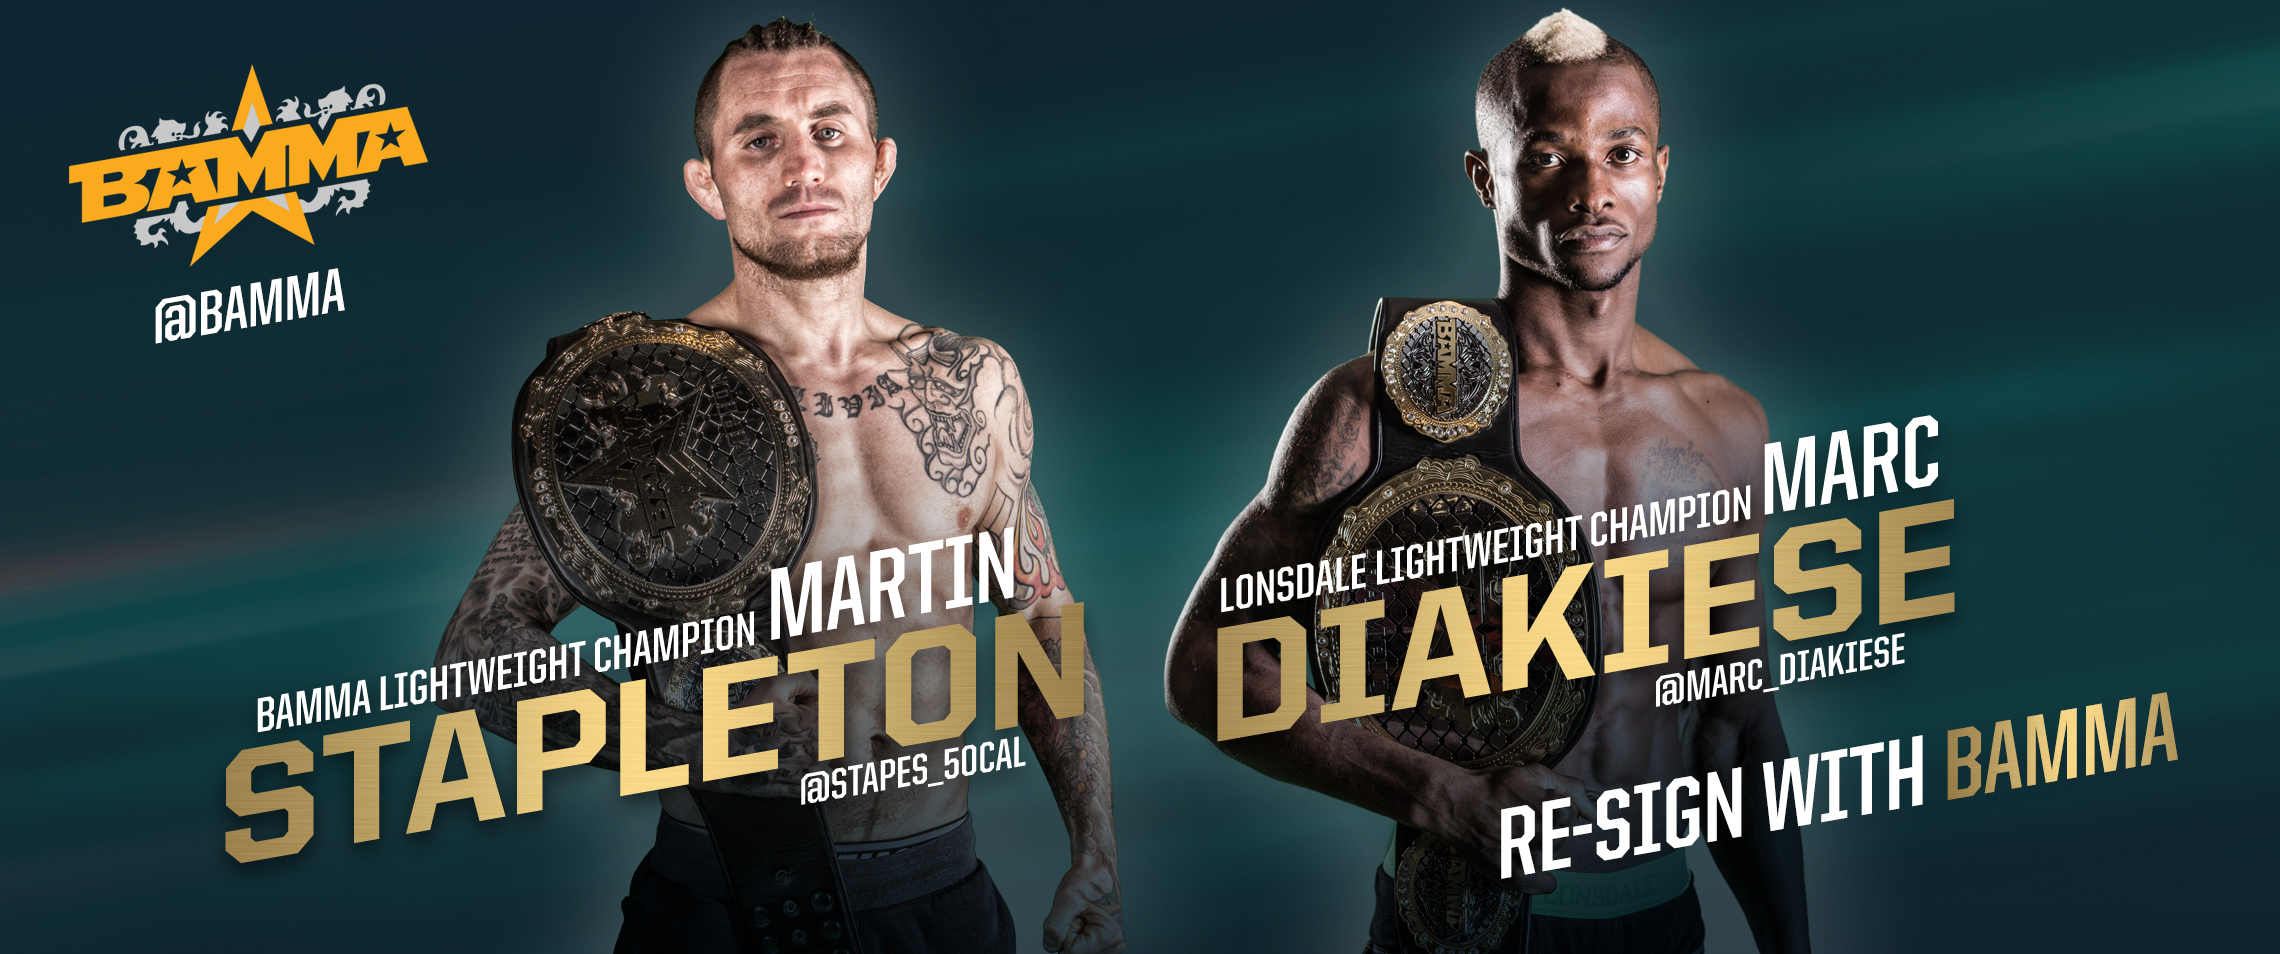 4 New Multi-fight deals for the BAMMA Lightweight Division